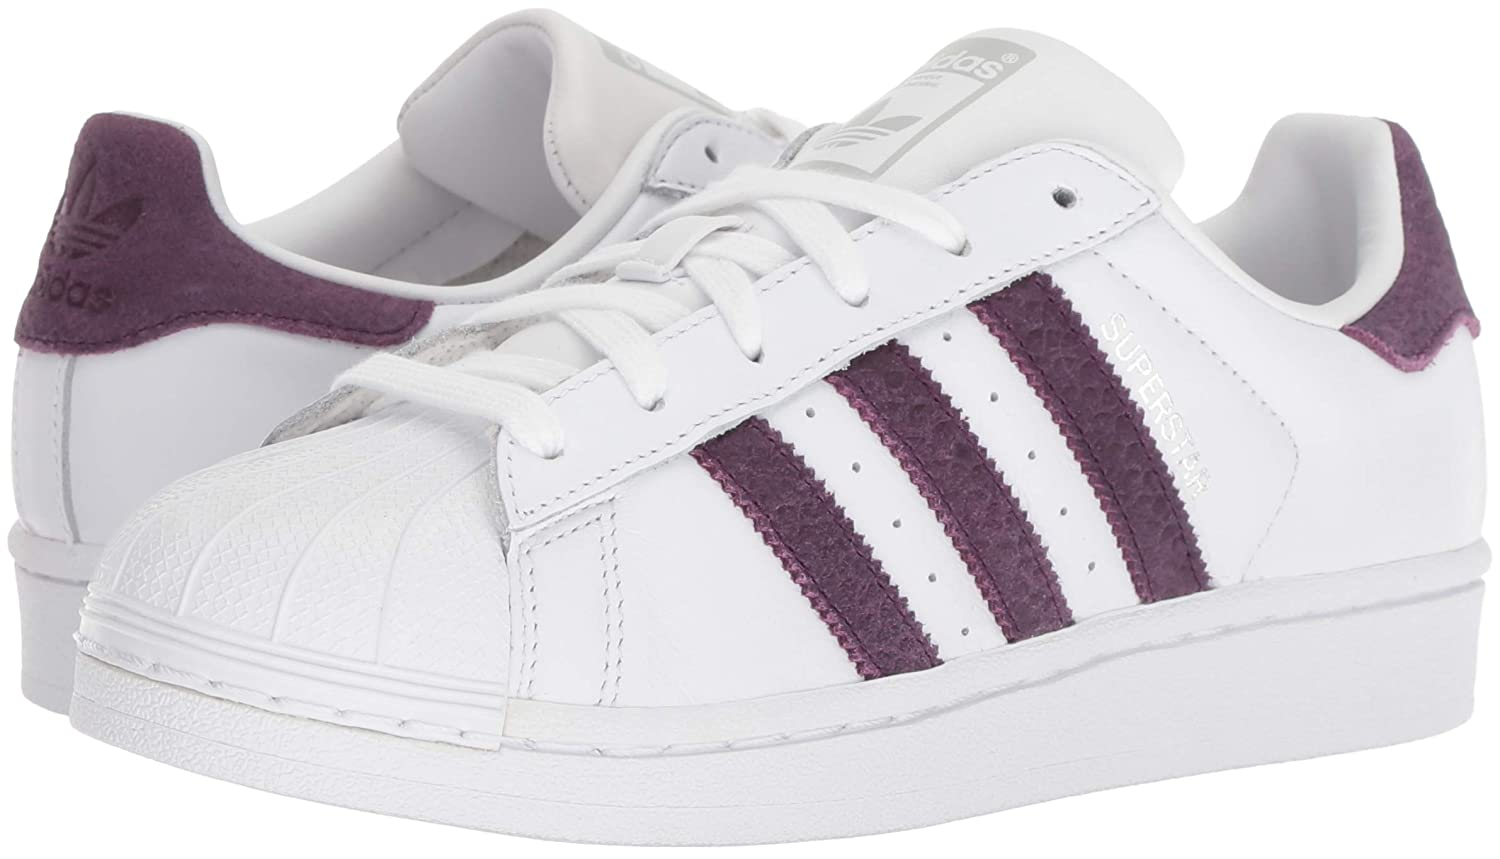 Adidas-Superstar-Women-039-s-Fashion-Casual-Sneakers-Athletic-Shoes-Originals thumbnail 38